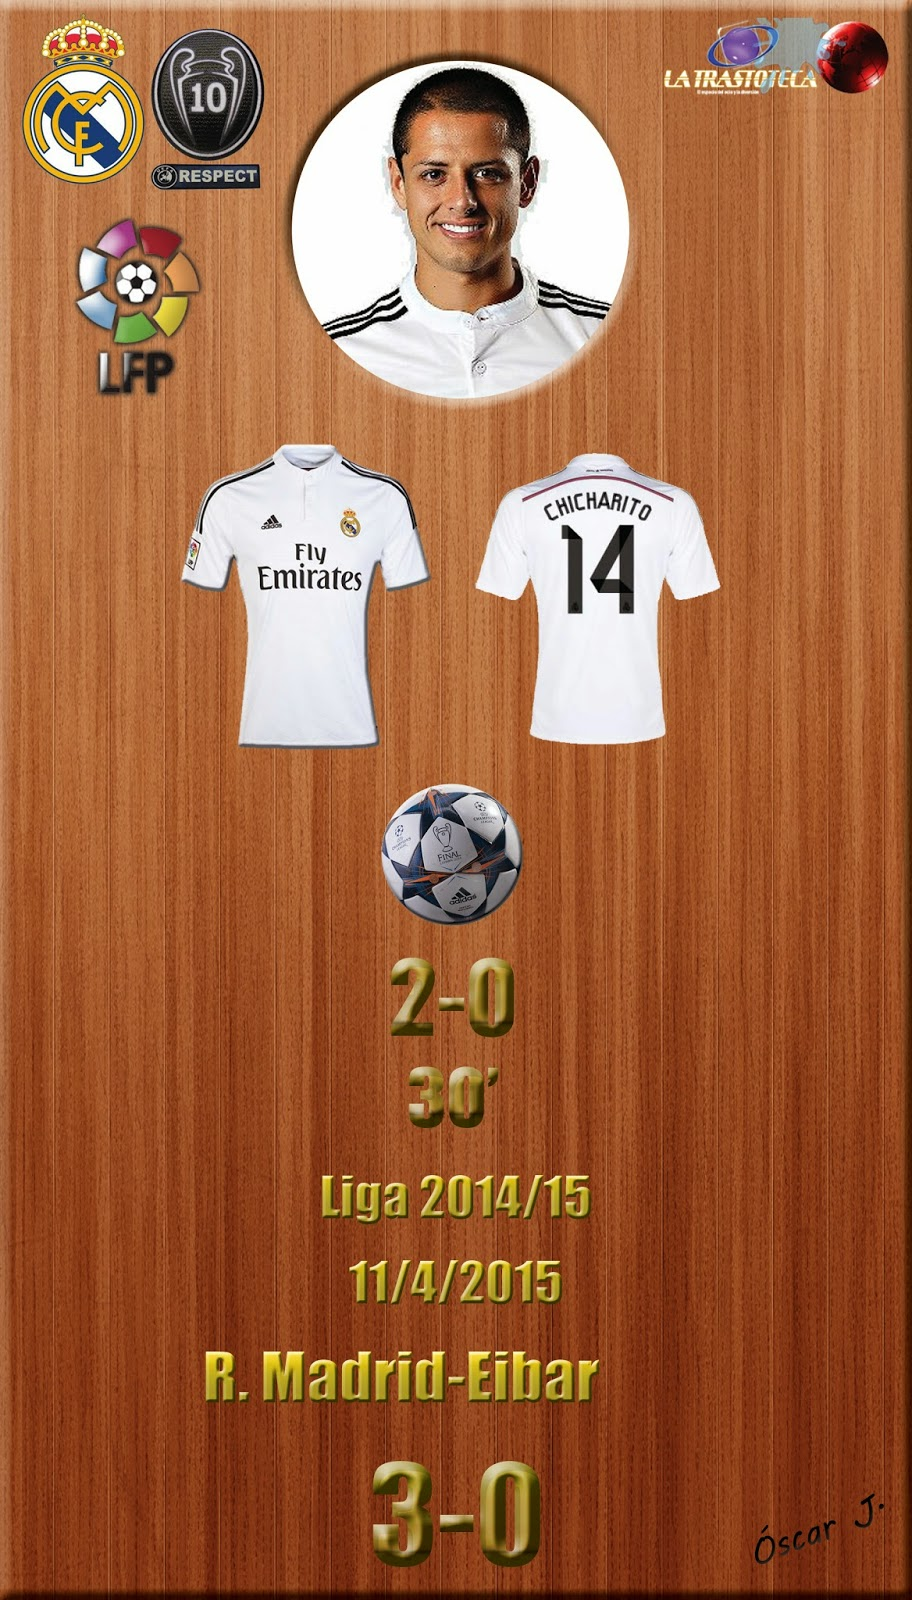 Chicharito (2-0) - Real Madrid 3-0 Eibar - Liga 2014/15 - Jornada 31 - (11/4/2015)